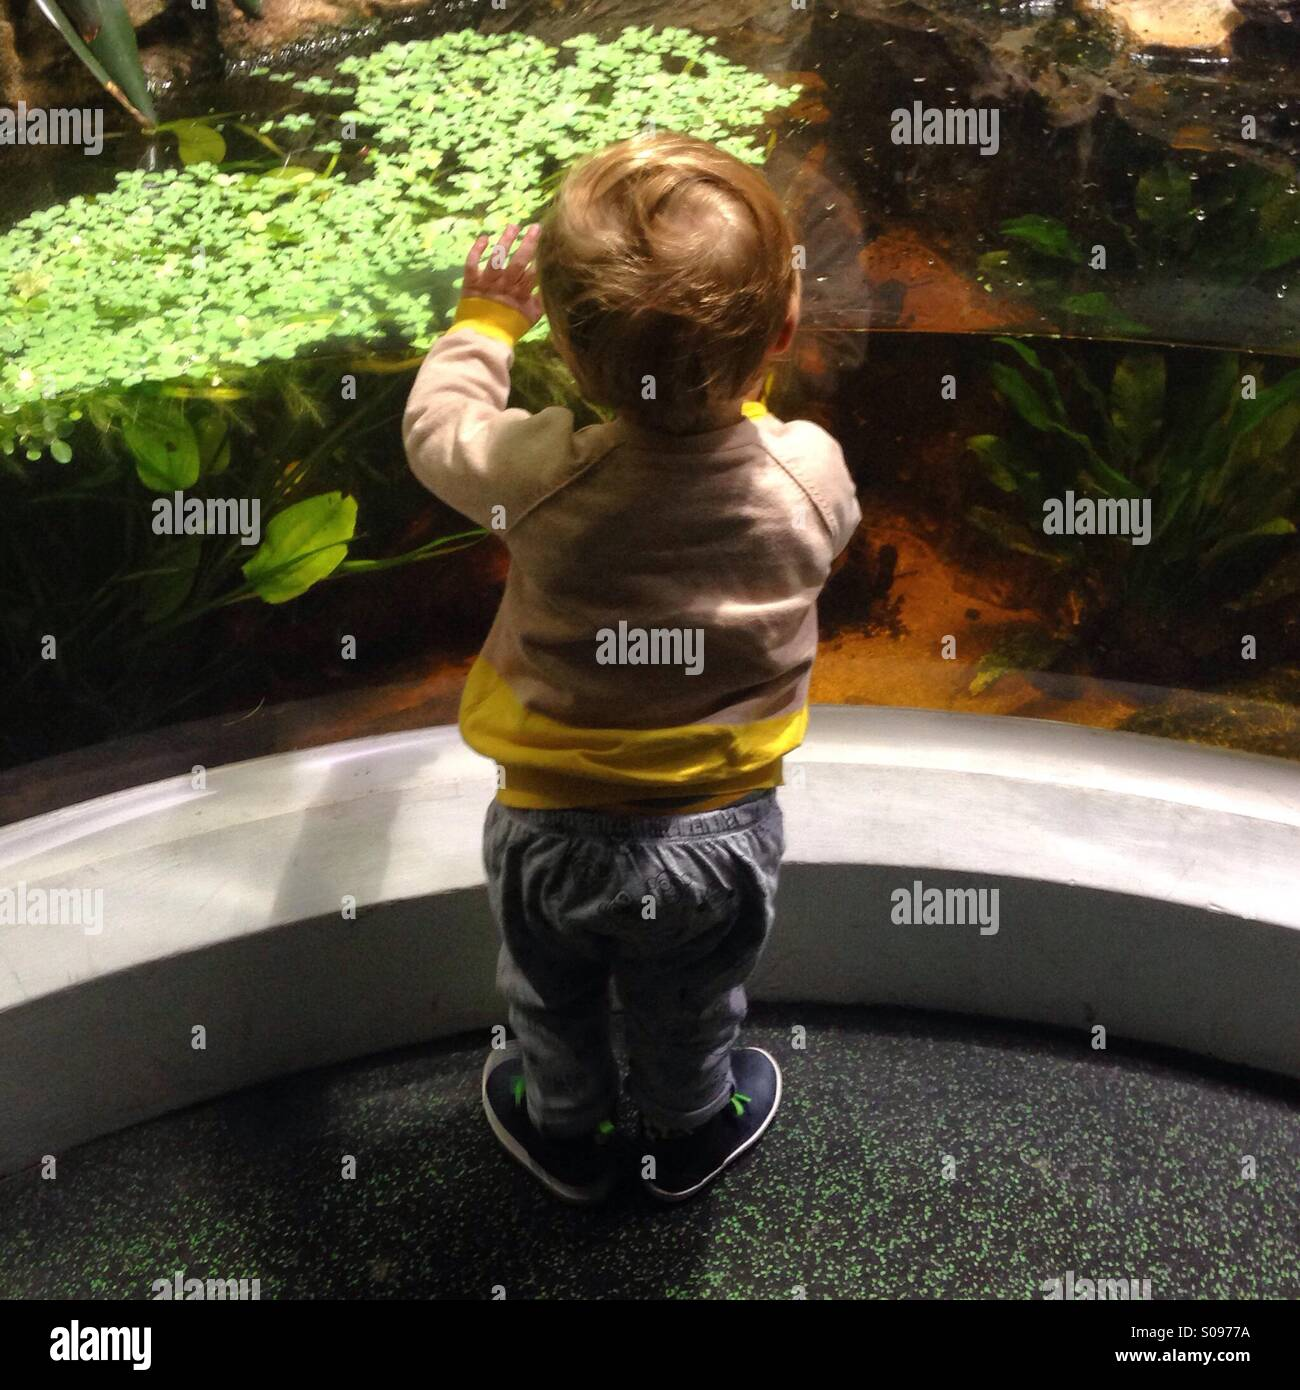 Little boy amazed on a visit to an Aquarium in London. - Stock Image